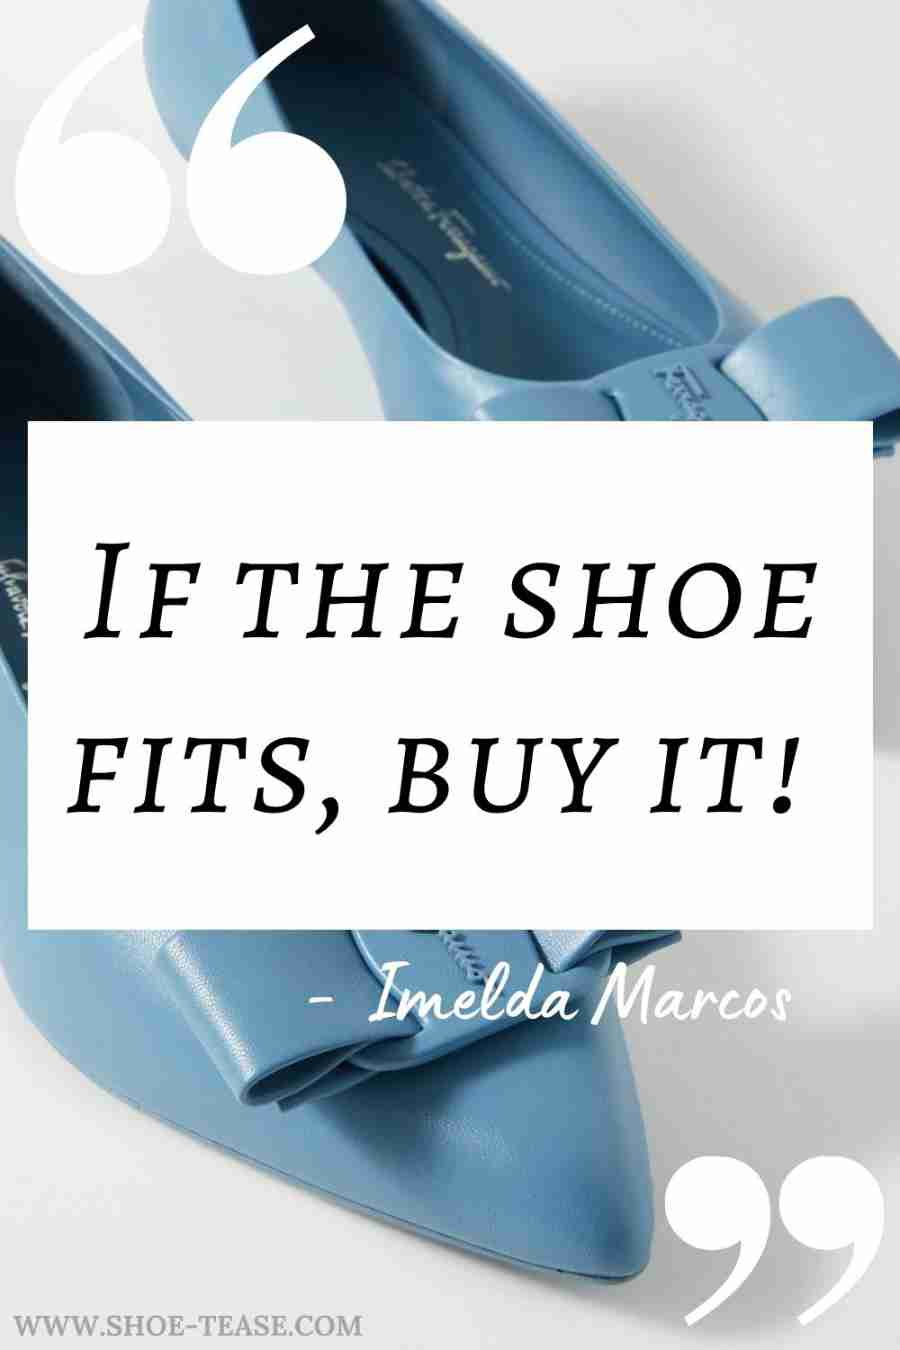 Shoe Quote text: if the shoe fits, buy it! Imelda Marcus, over photo of blue bow shoes.